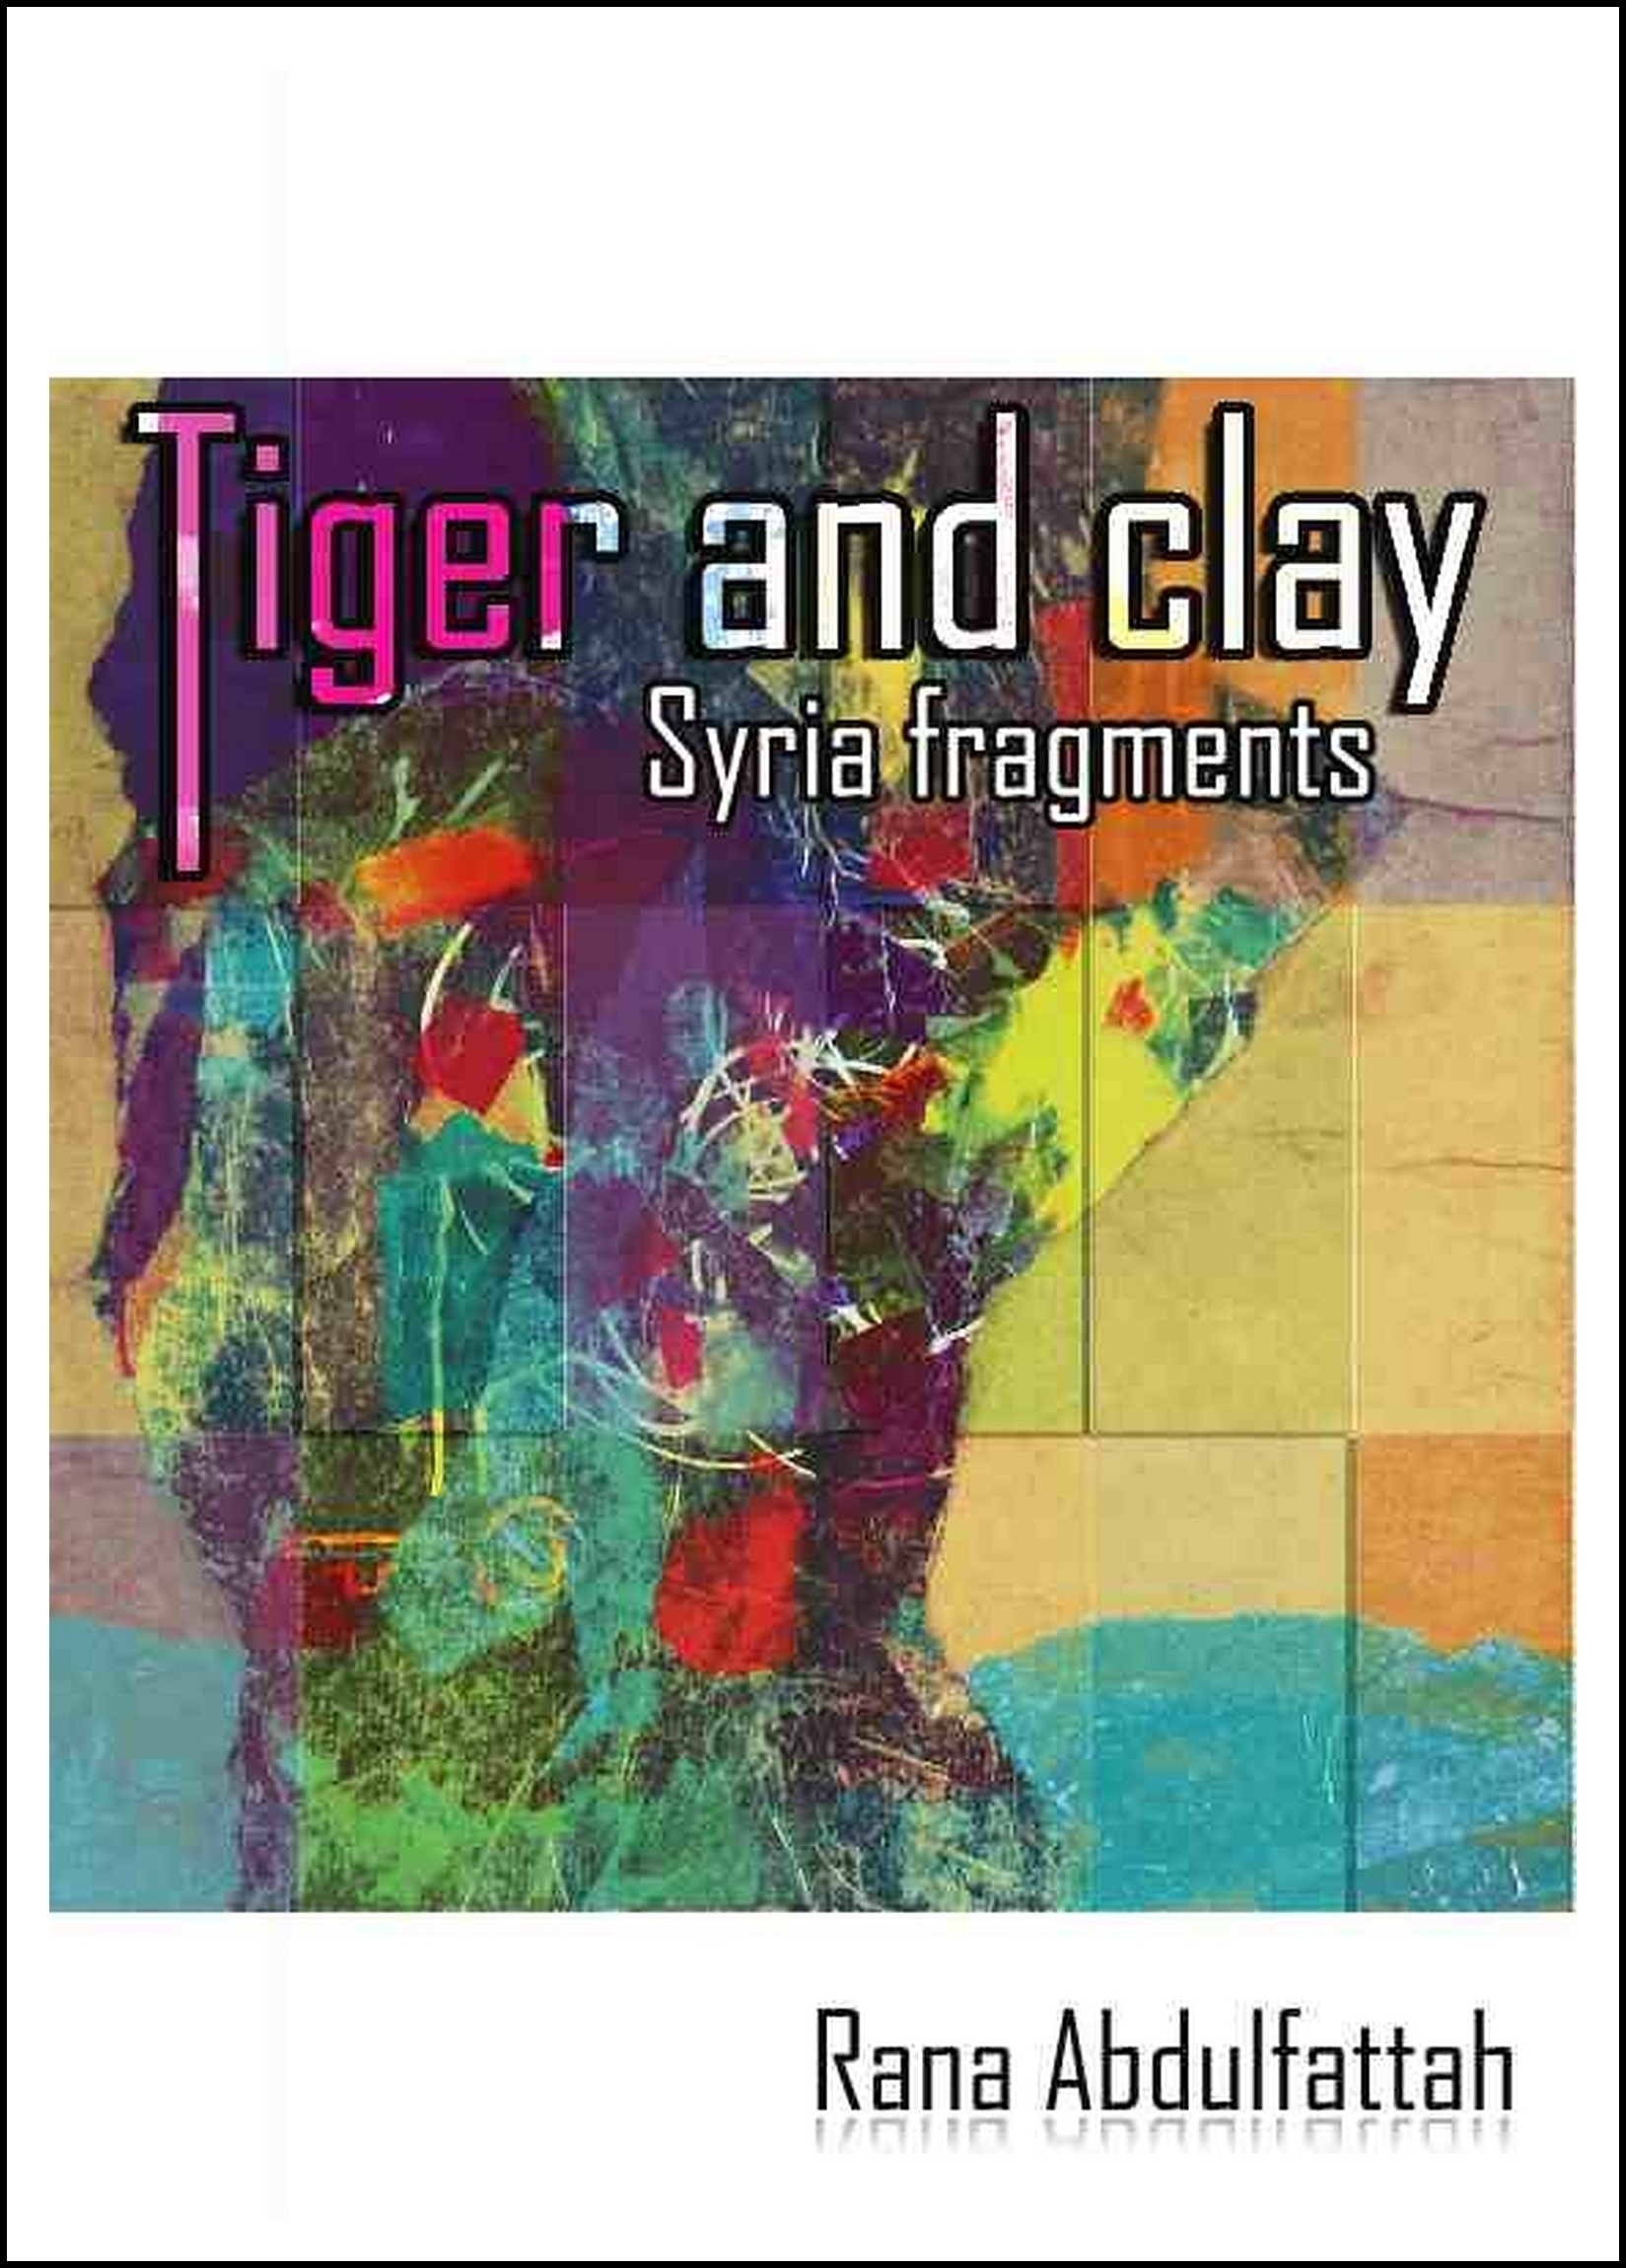 Tiger and Clay, front cover